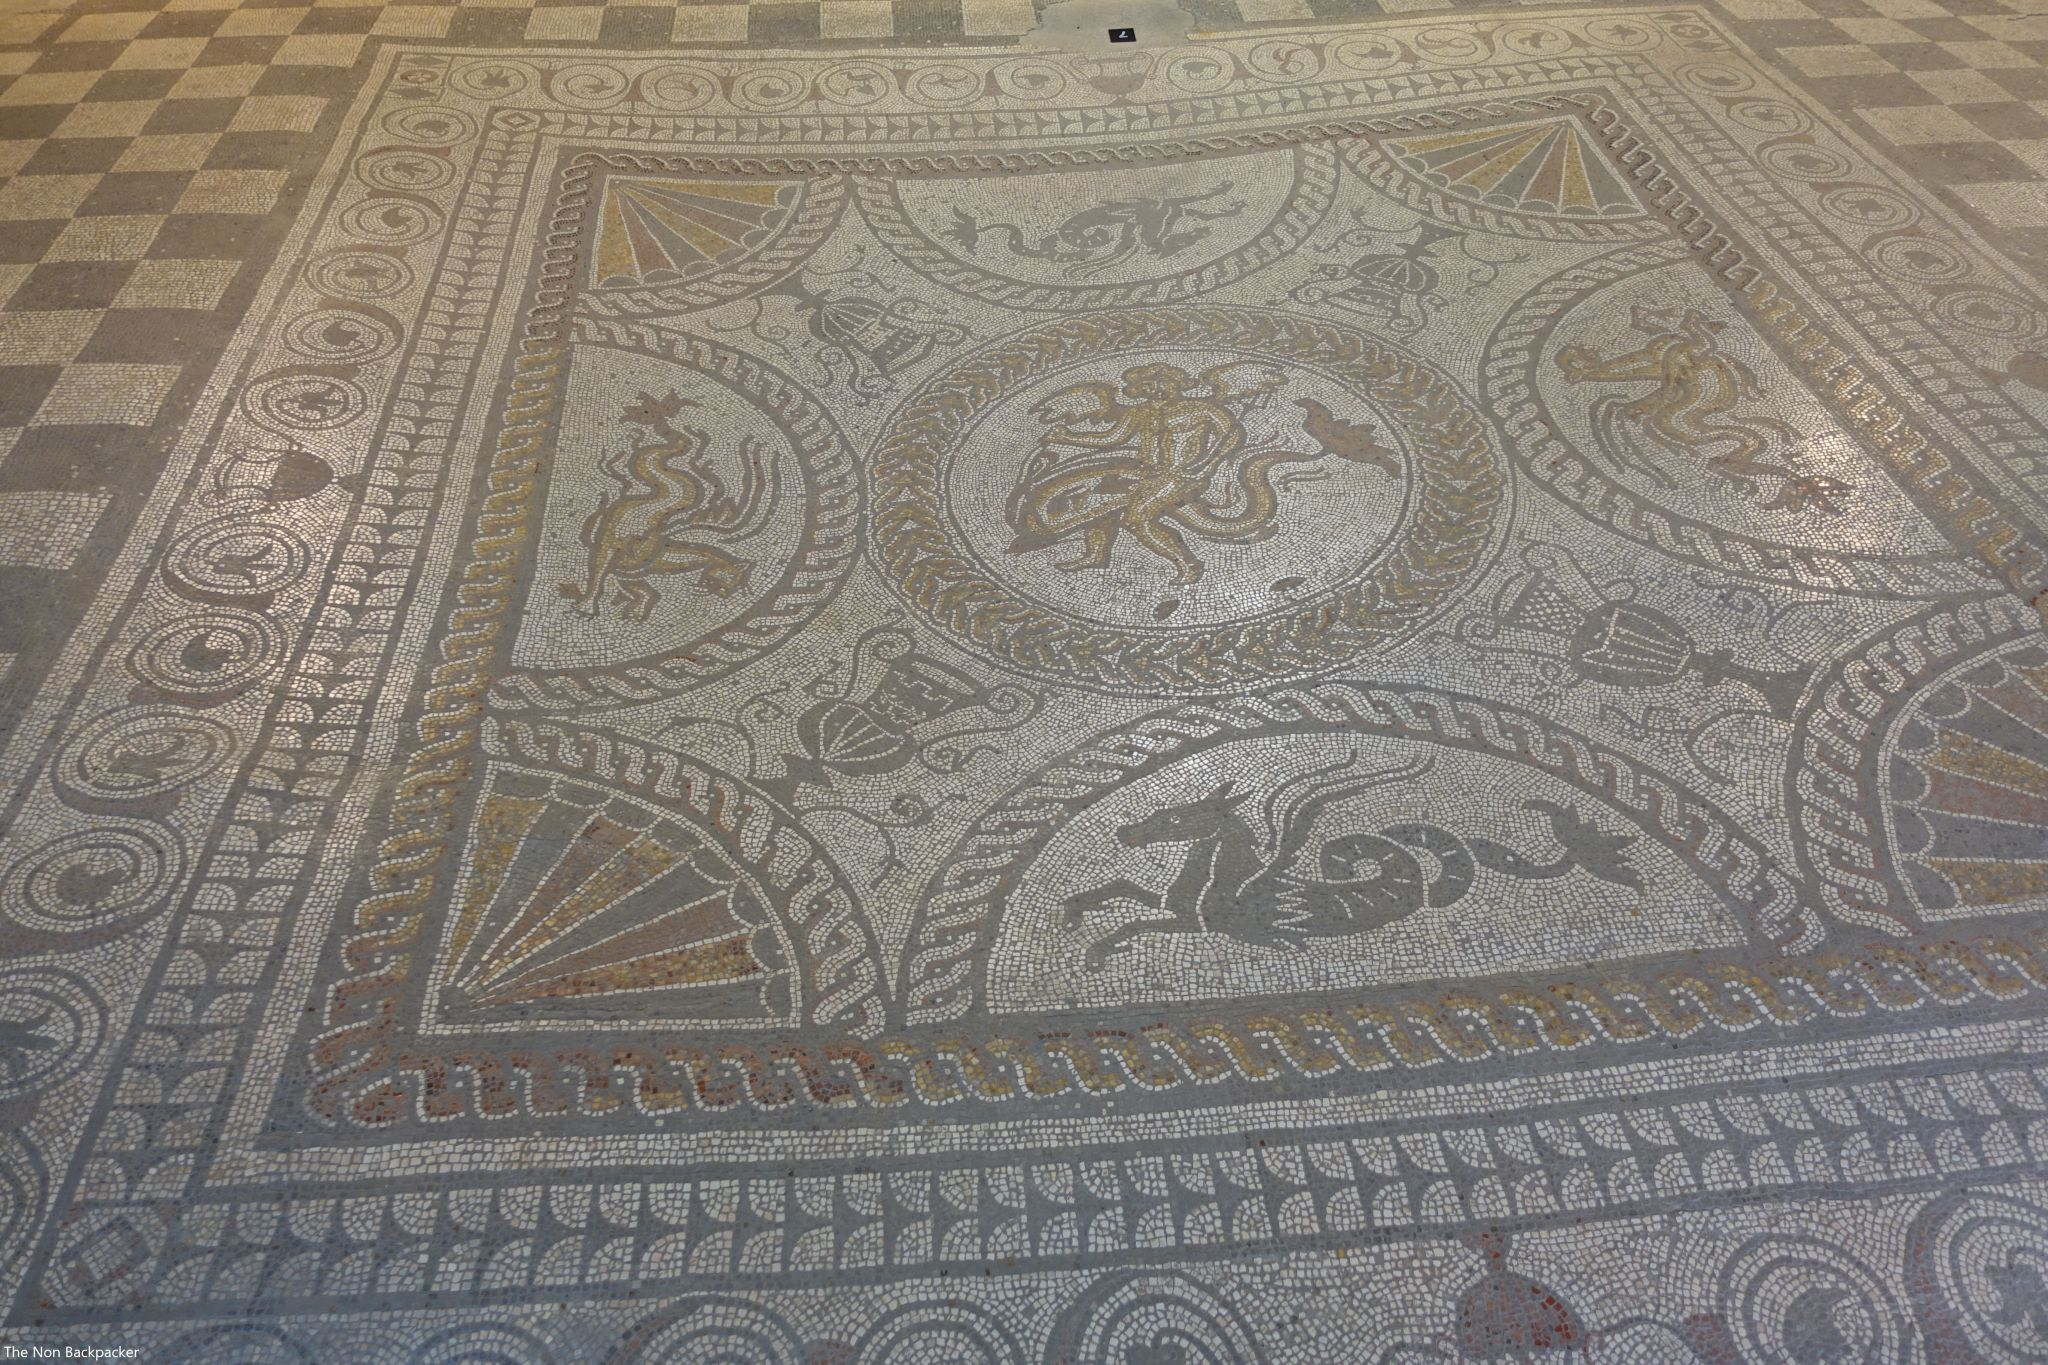 Huge mosaic with images of the sea